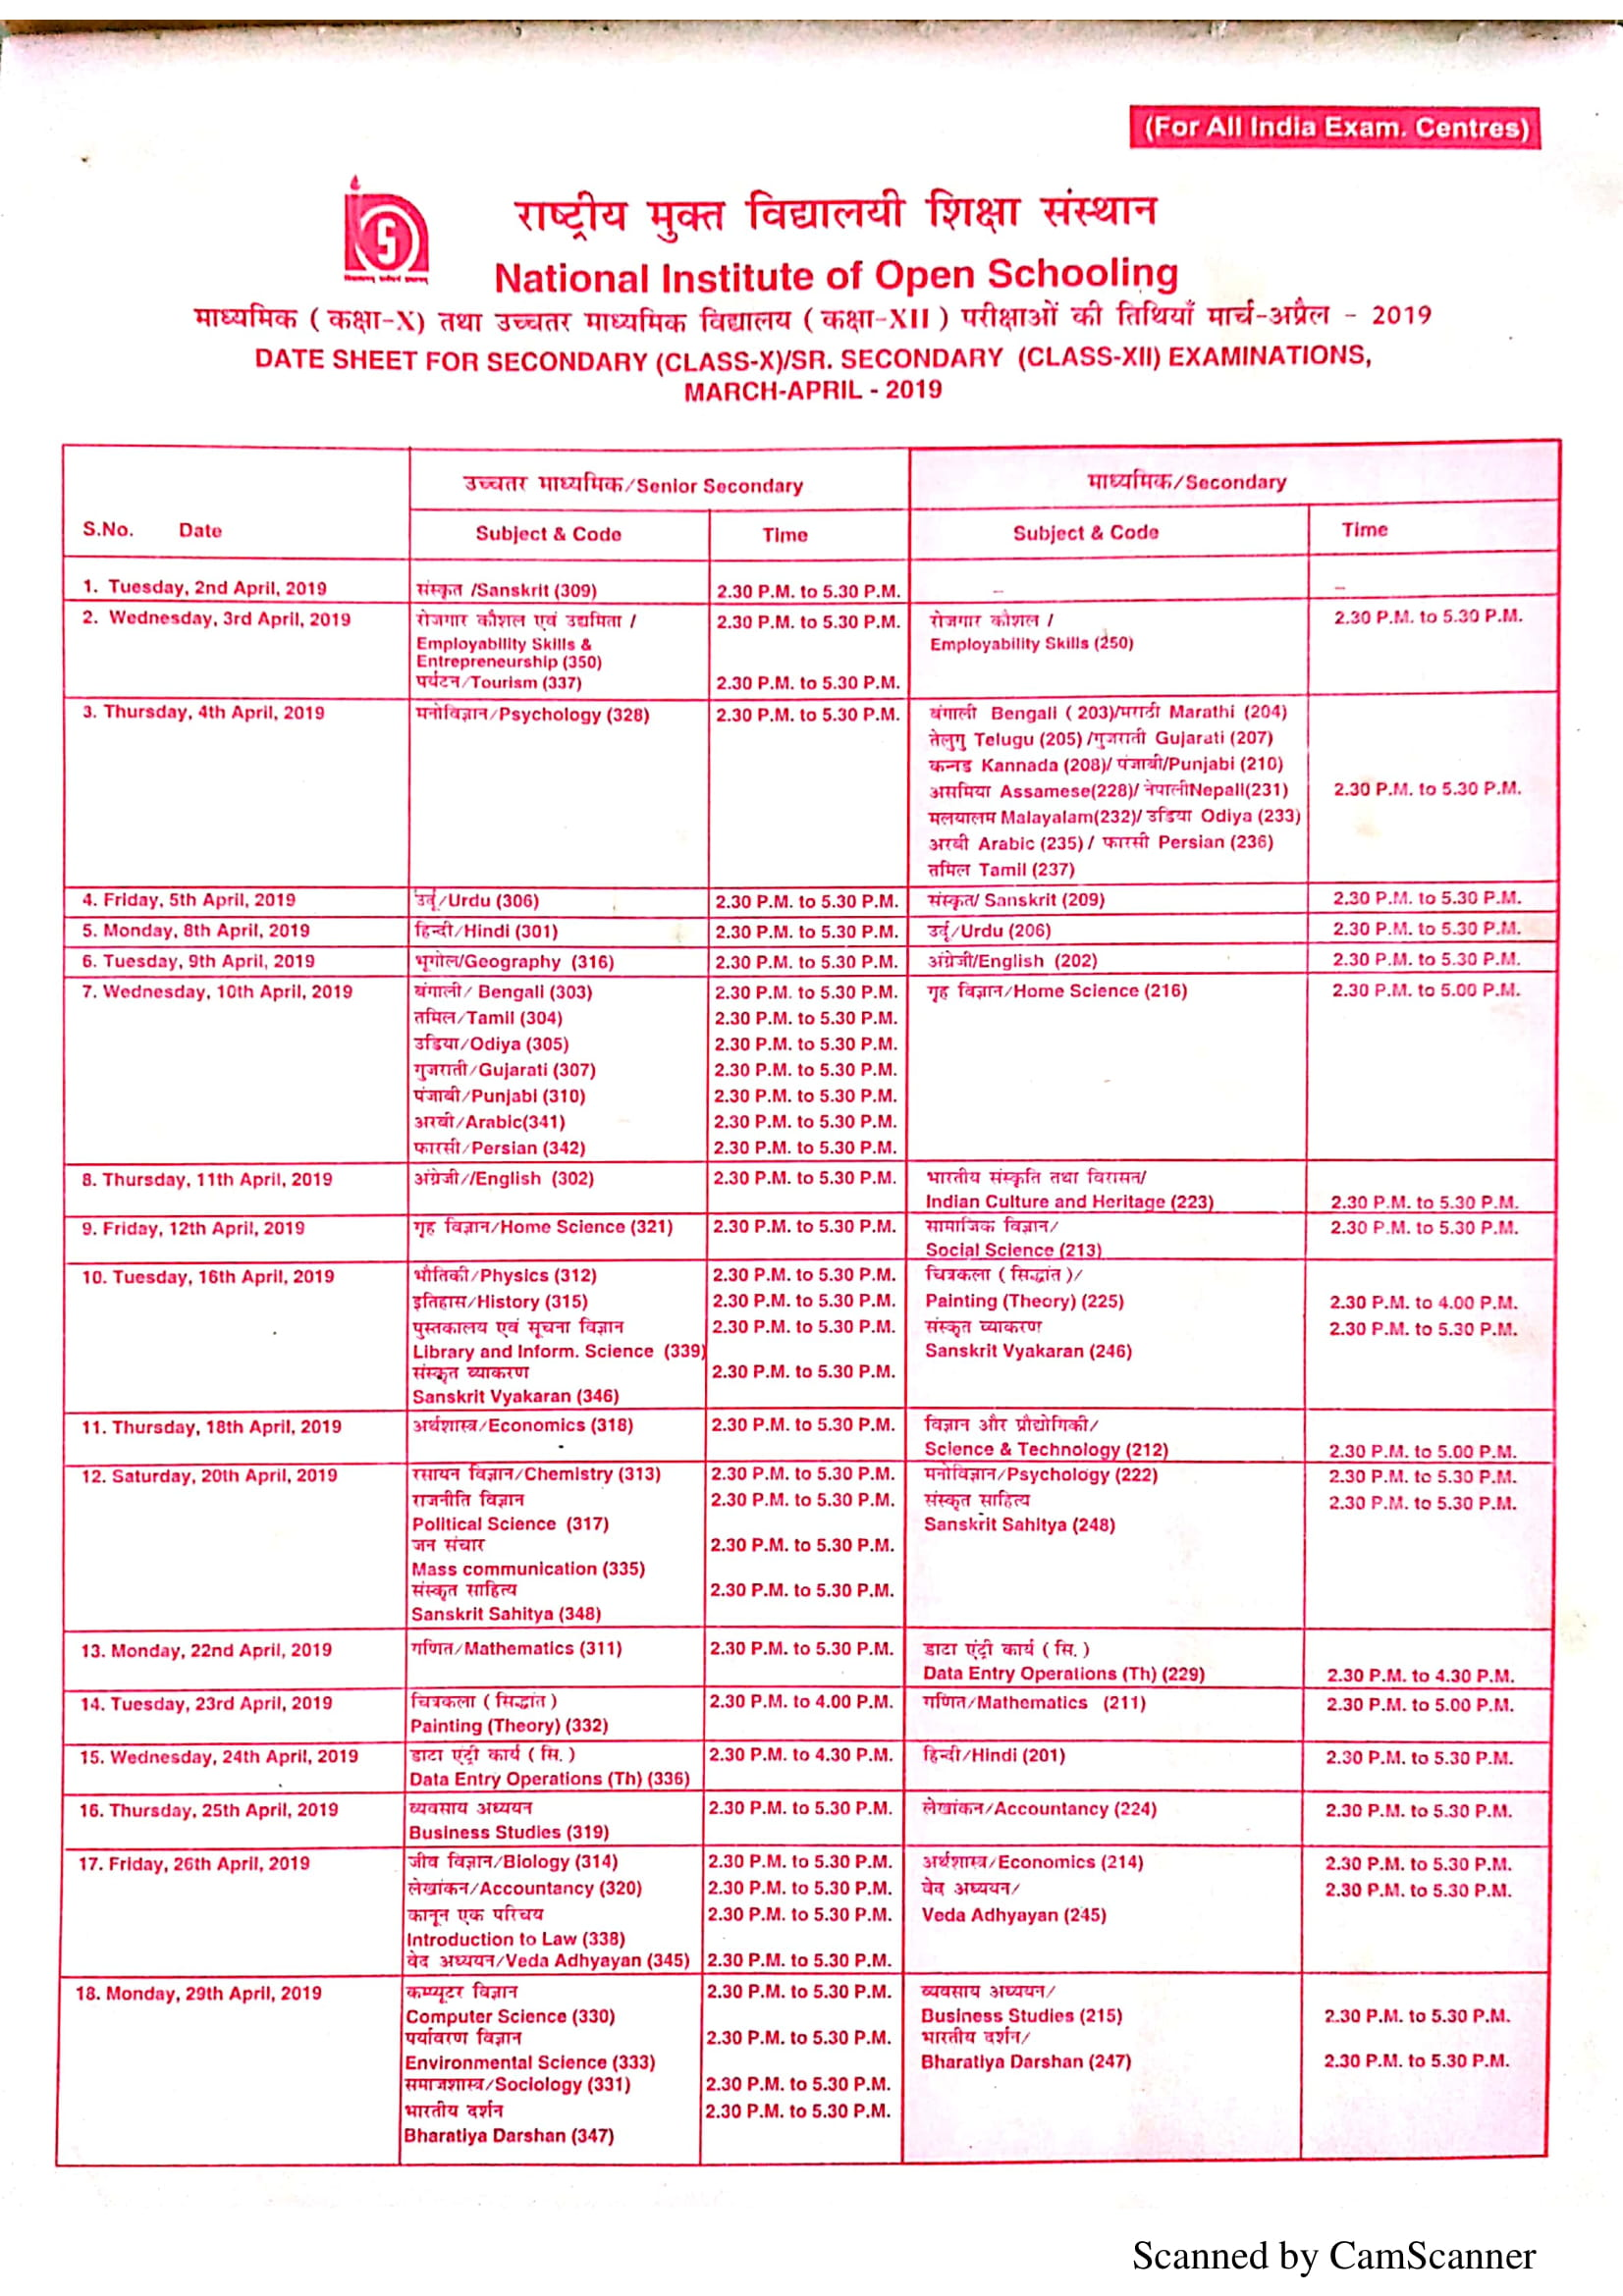 NIOS 10th & 12th Exam Schedule 2019